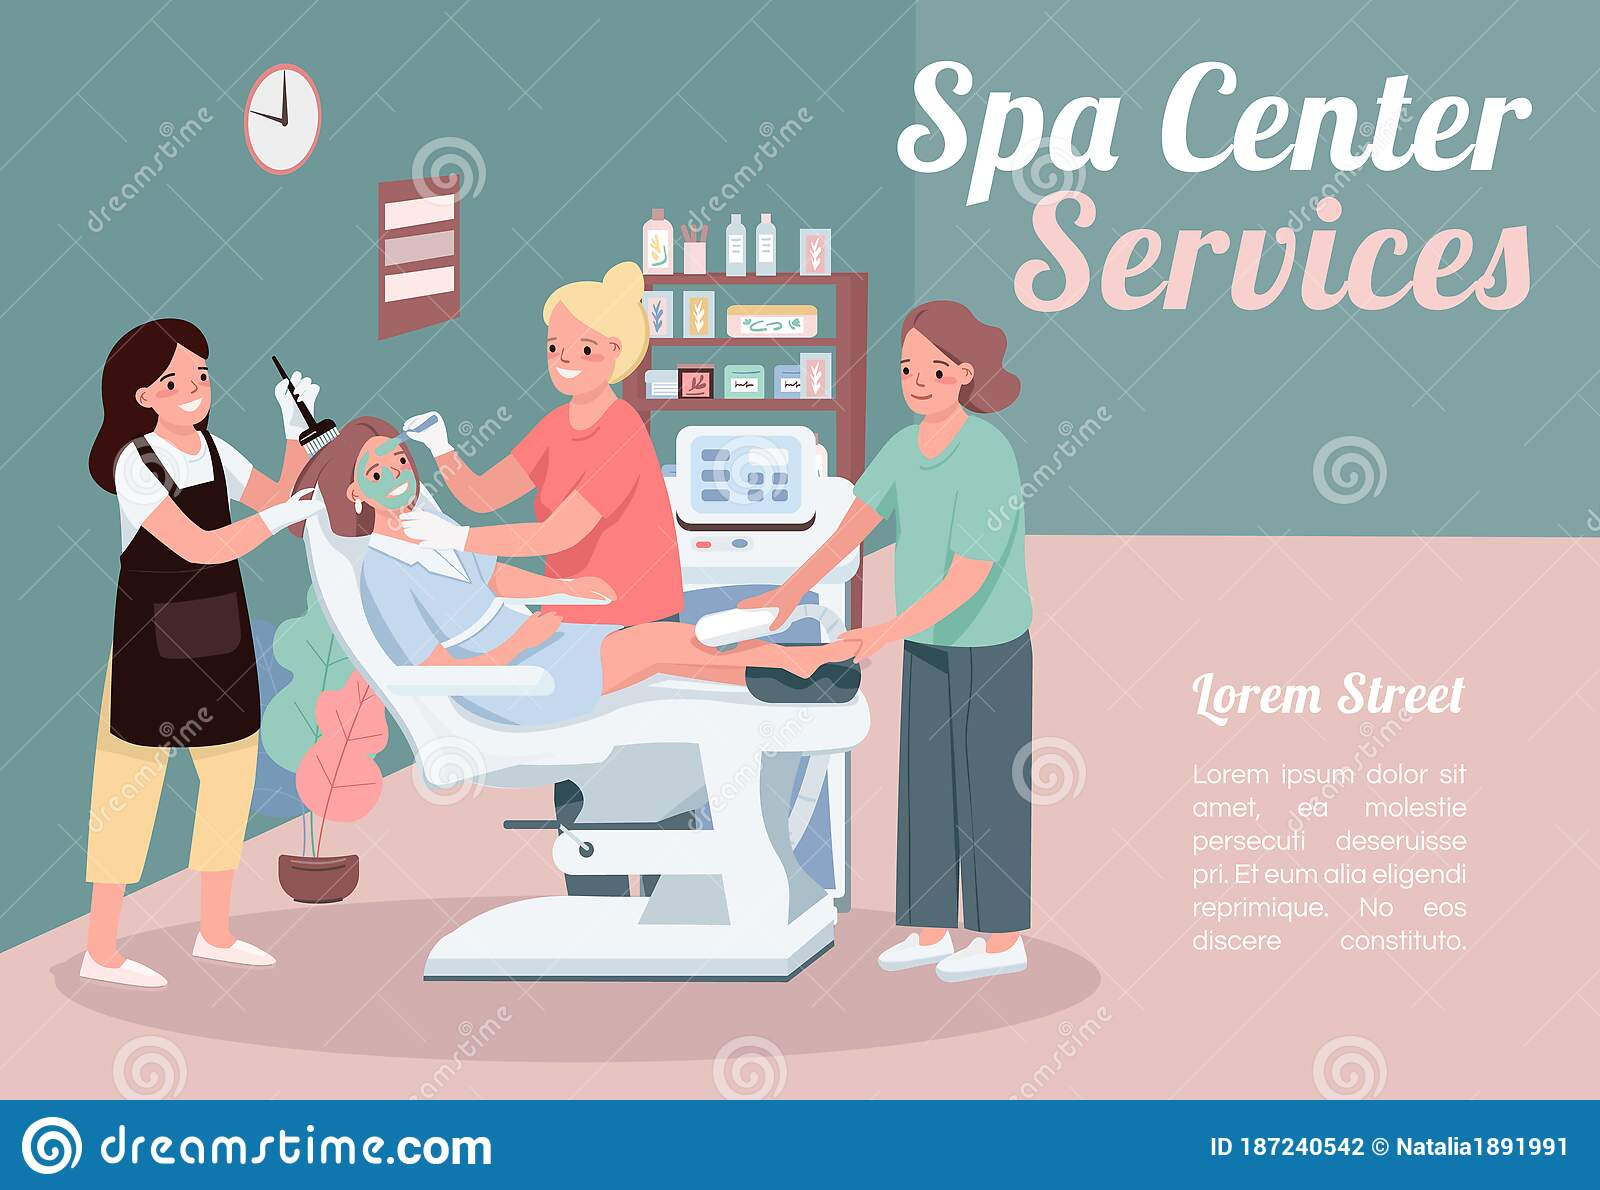 Spa Center Services Banner Flat Vector Template Stock Vector Illustration Of Hair Cosmetology 187240542